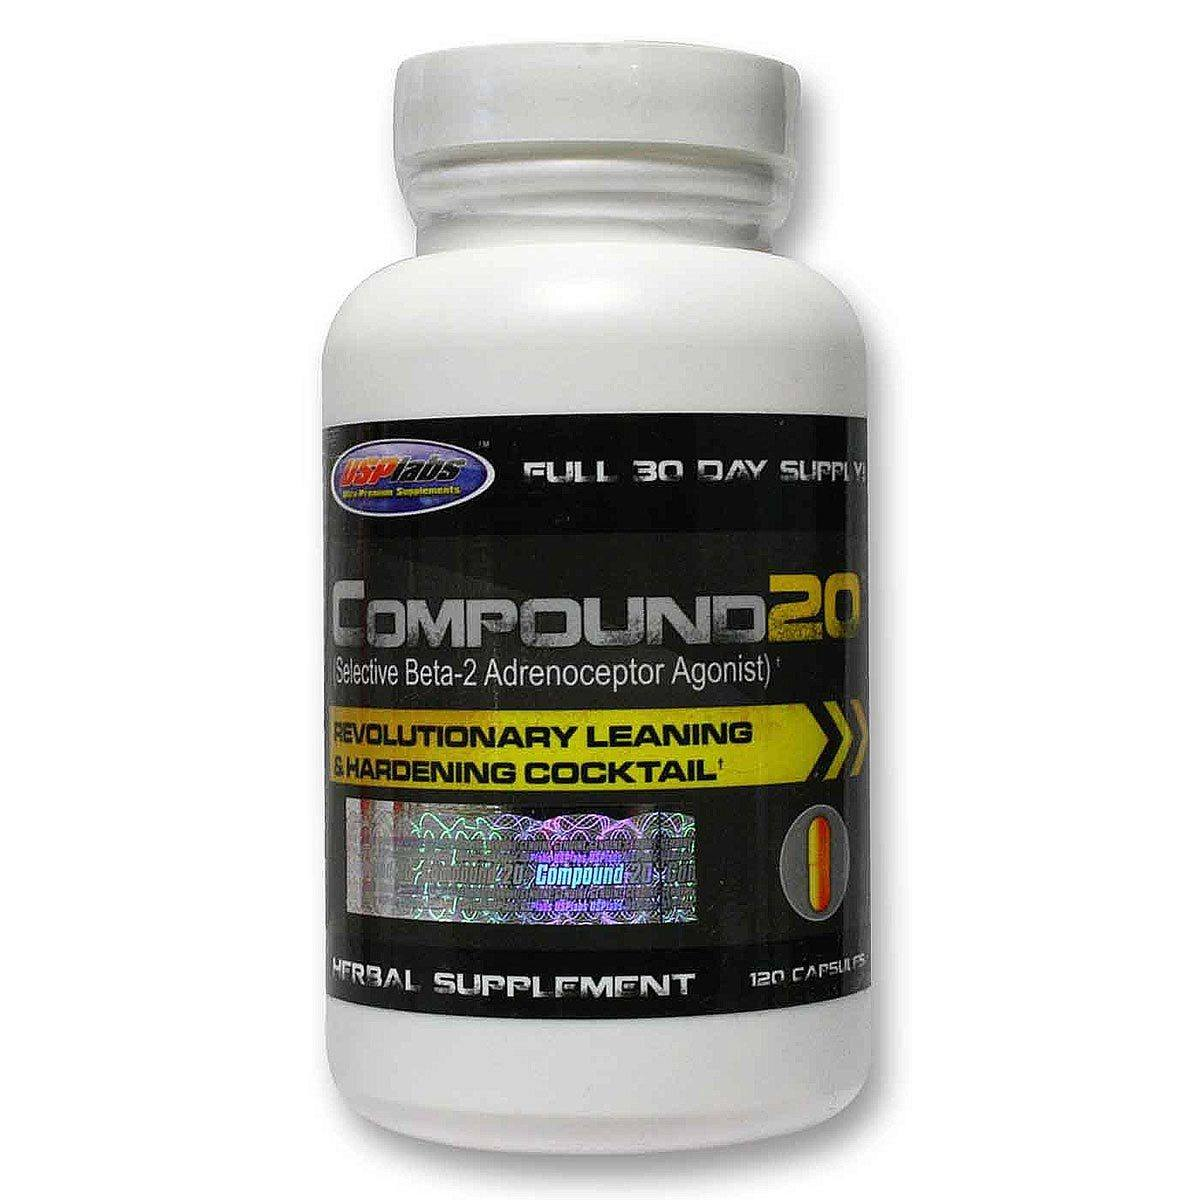 USPLABS Compound 20 132 Caps Testosterone Boosters USPLABS  (1058713763883)